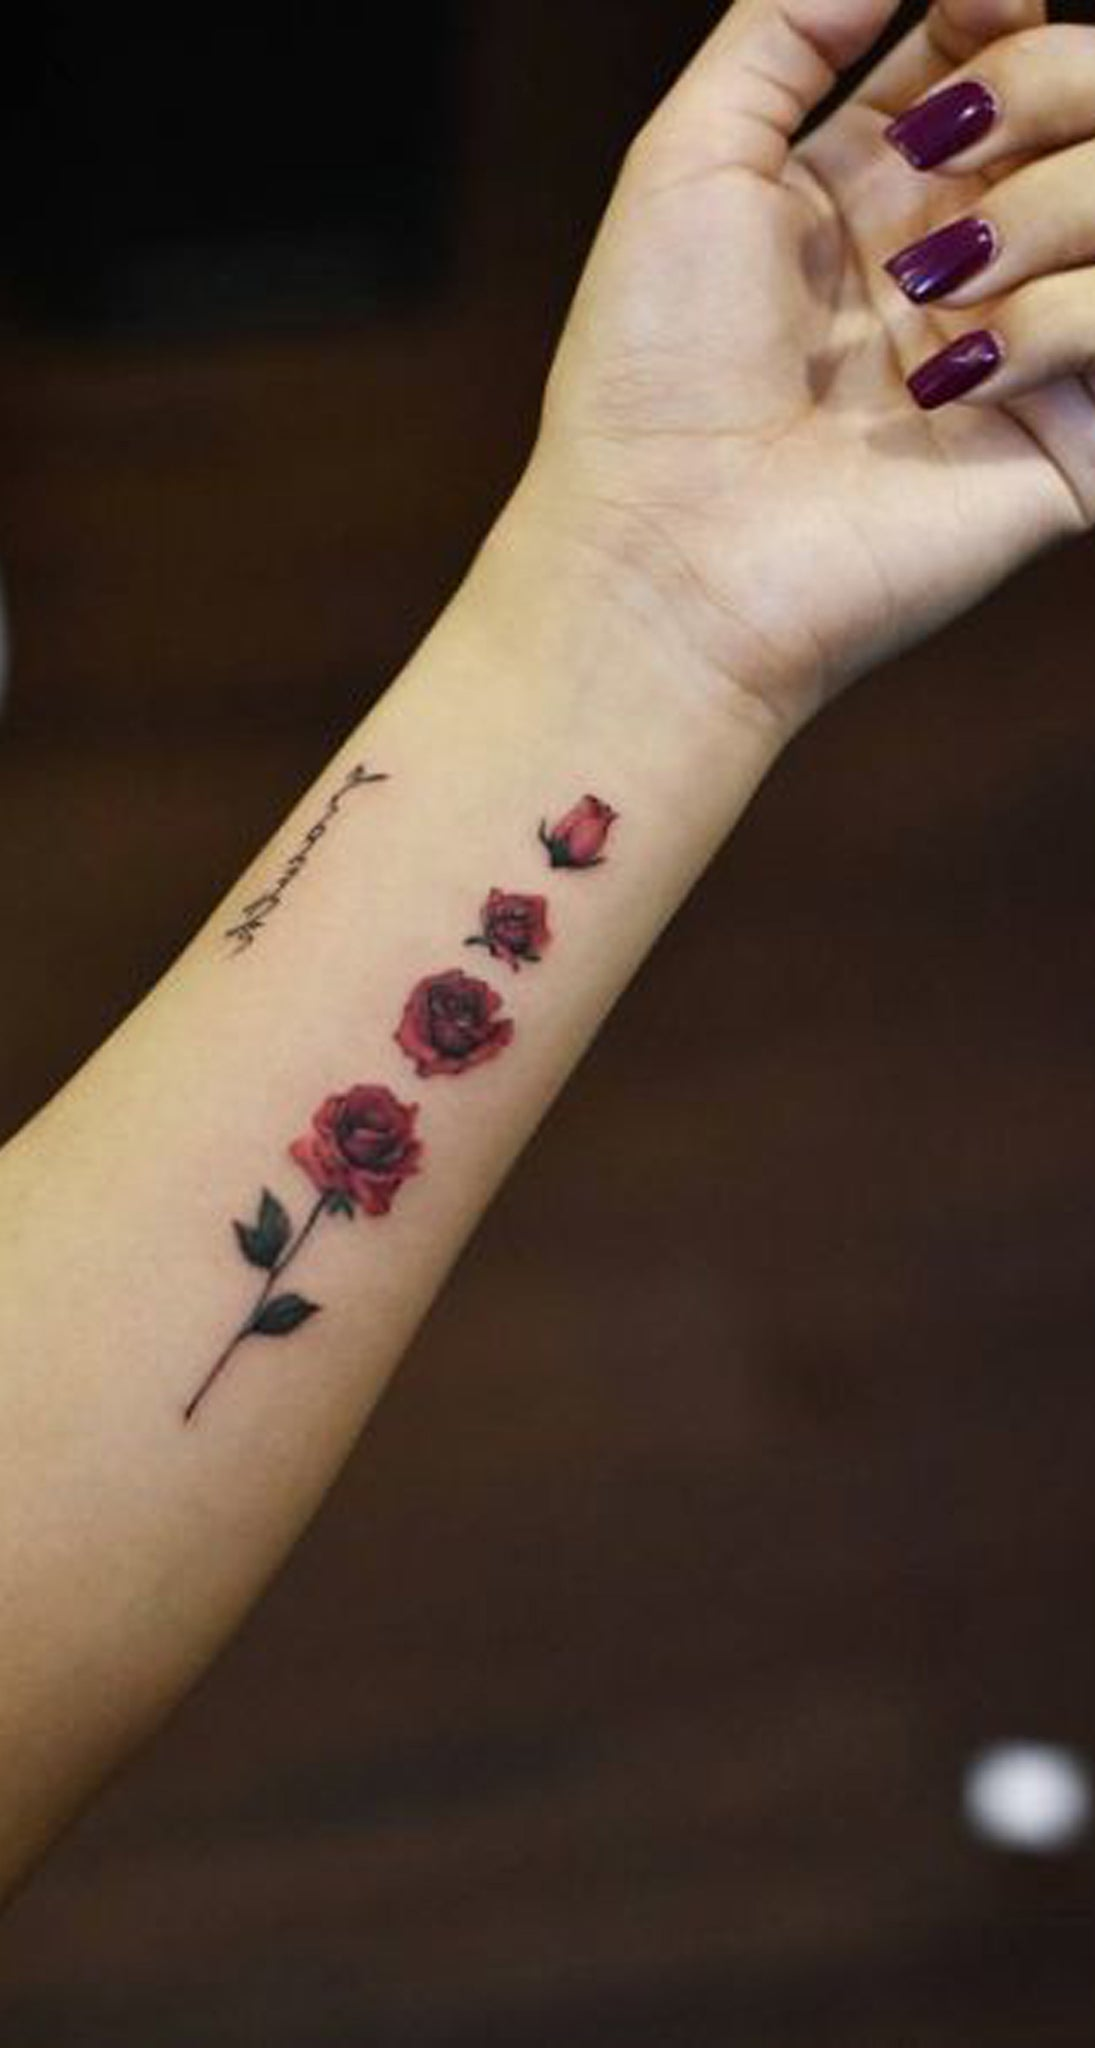 Unique Rose Arm Tattoo Ideas for Teenagers - Cool Special Floral Flower Watercolor Forearm Tat - www.MyBodiArt.com #tattoos